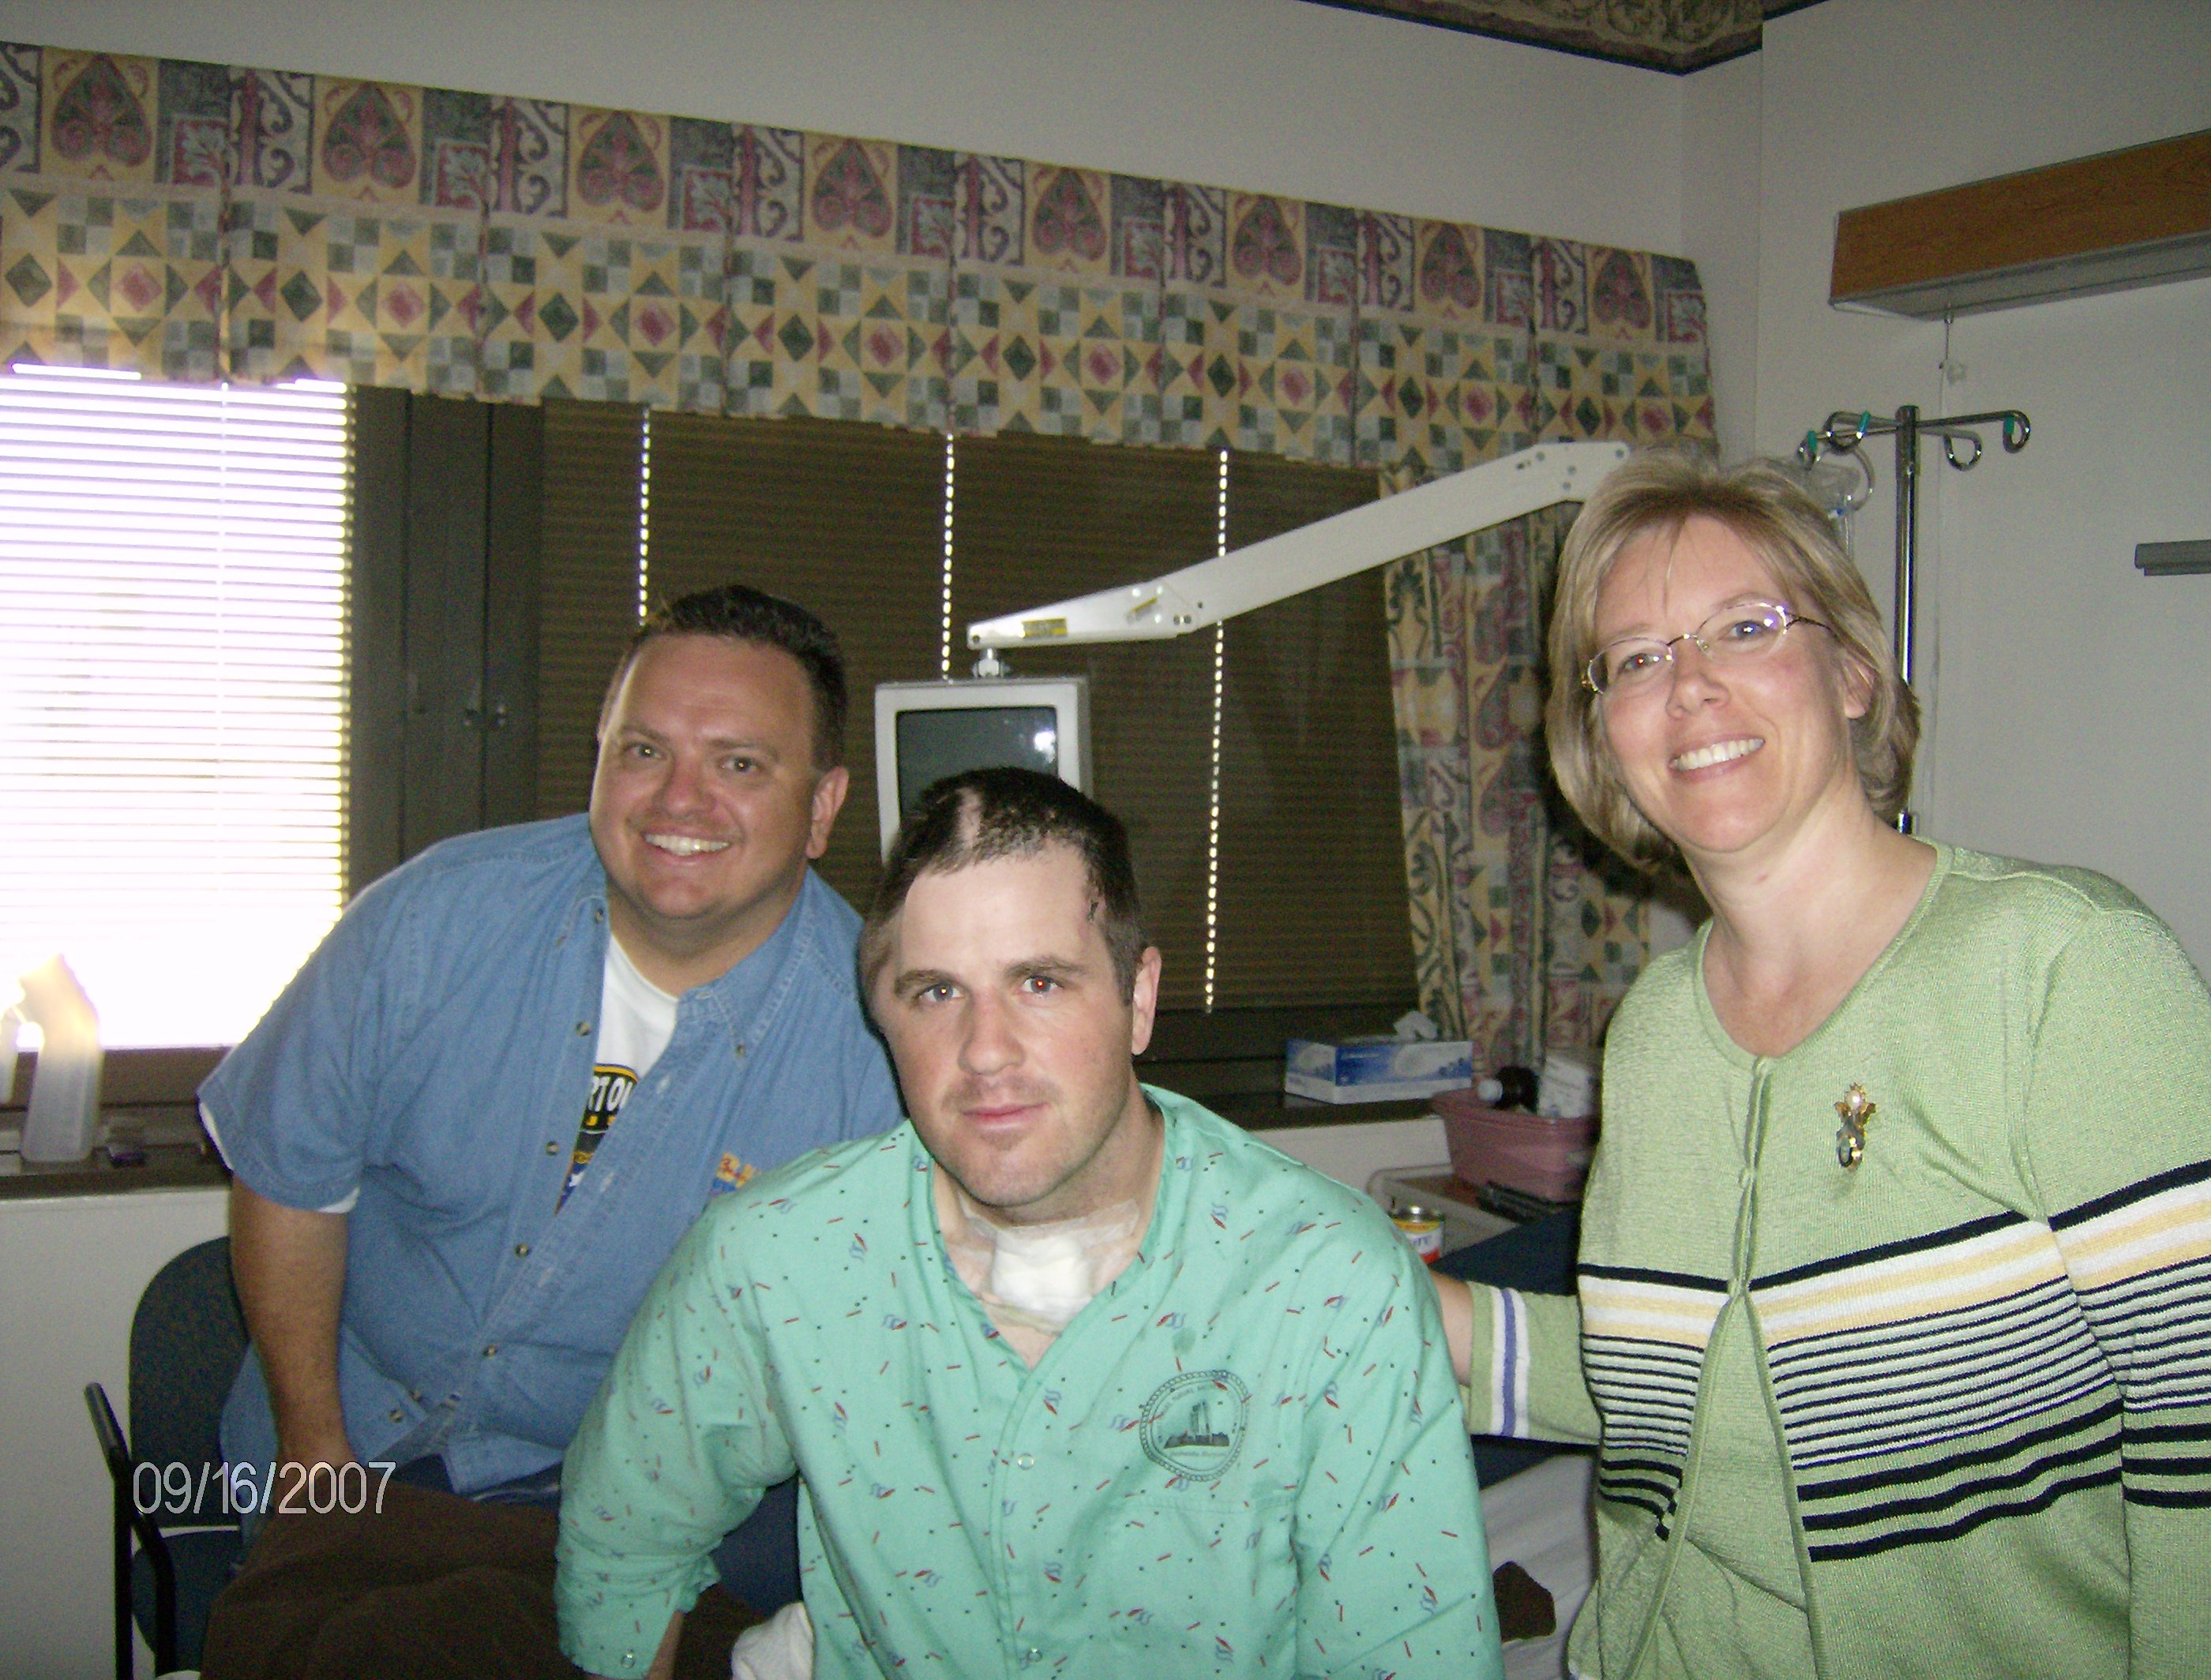 VISITING WOUNDED WARRIORS